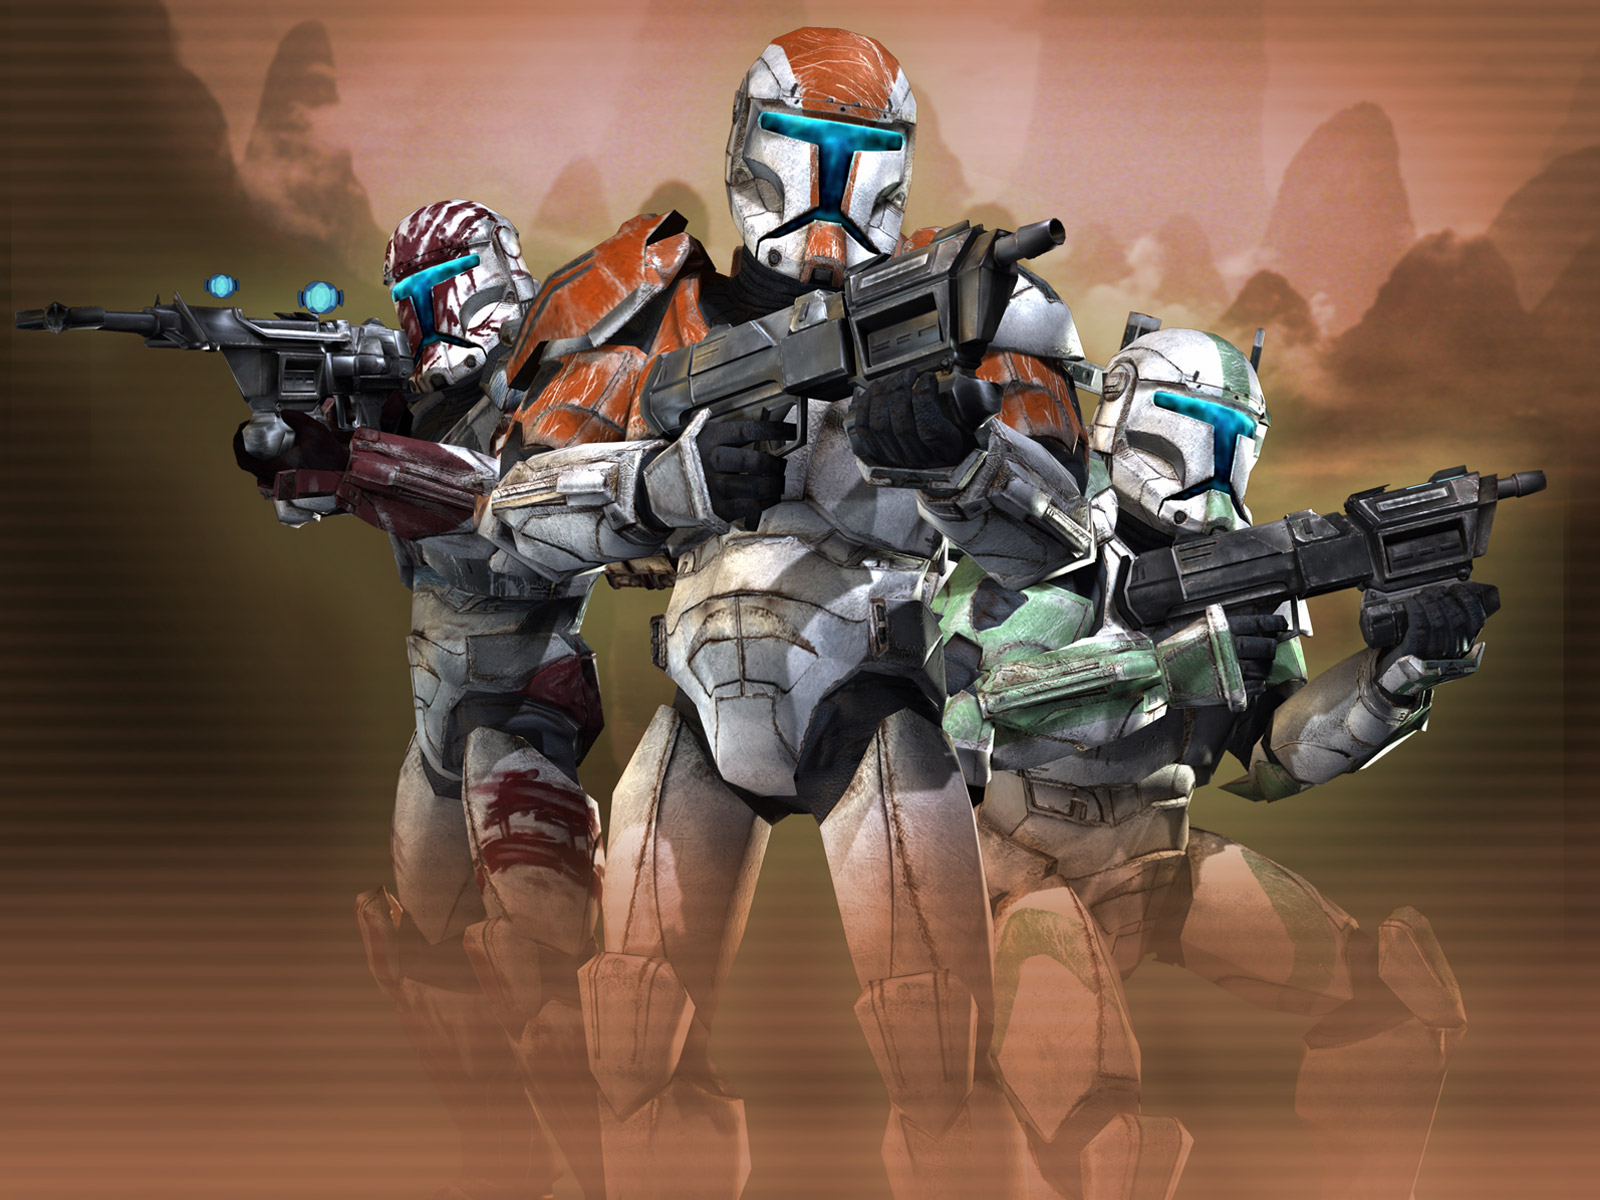 clone commando squad image - photo #21